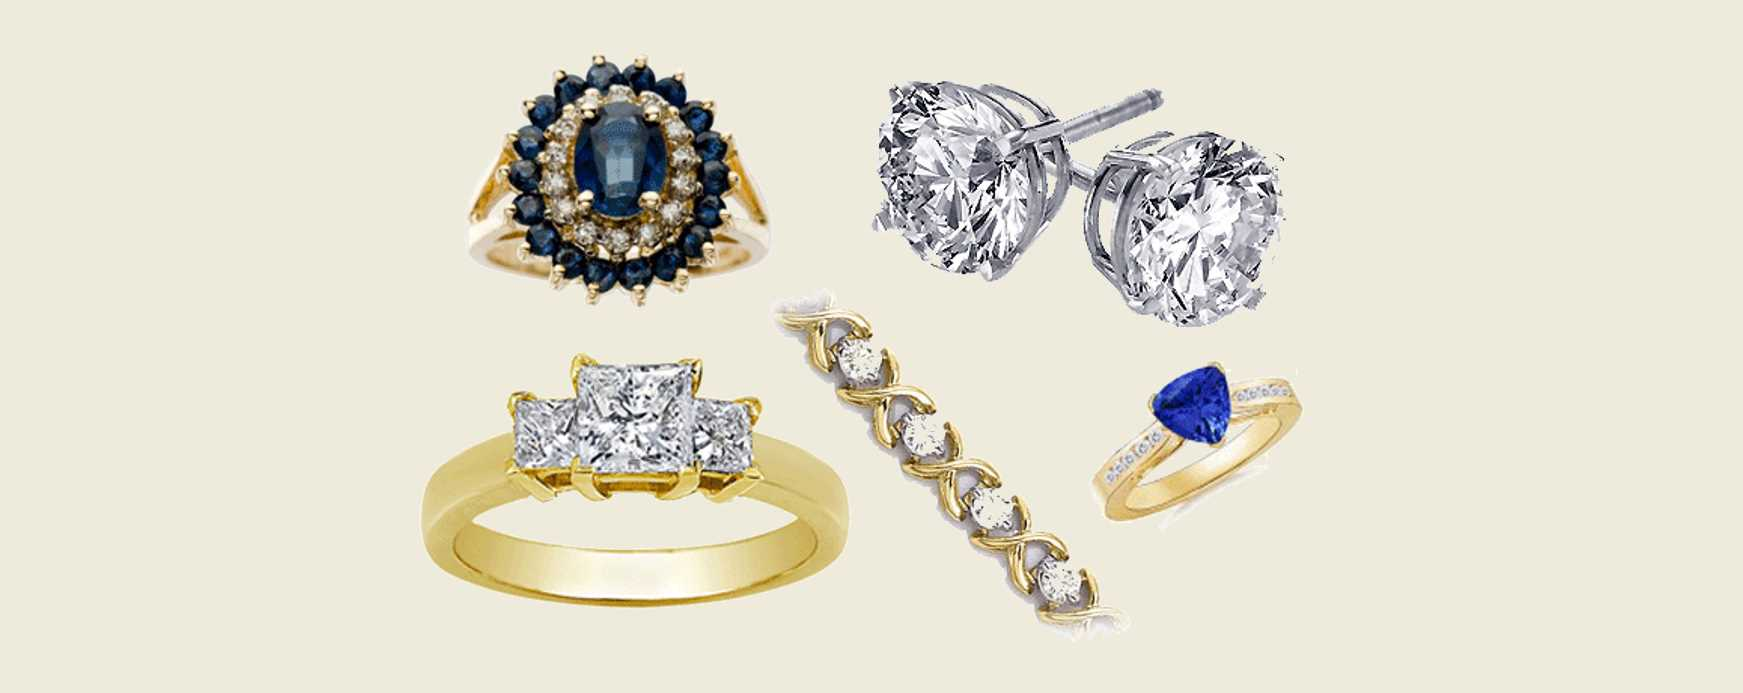 sapphire jewellery estate ring art designers deco rings jewelry